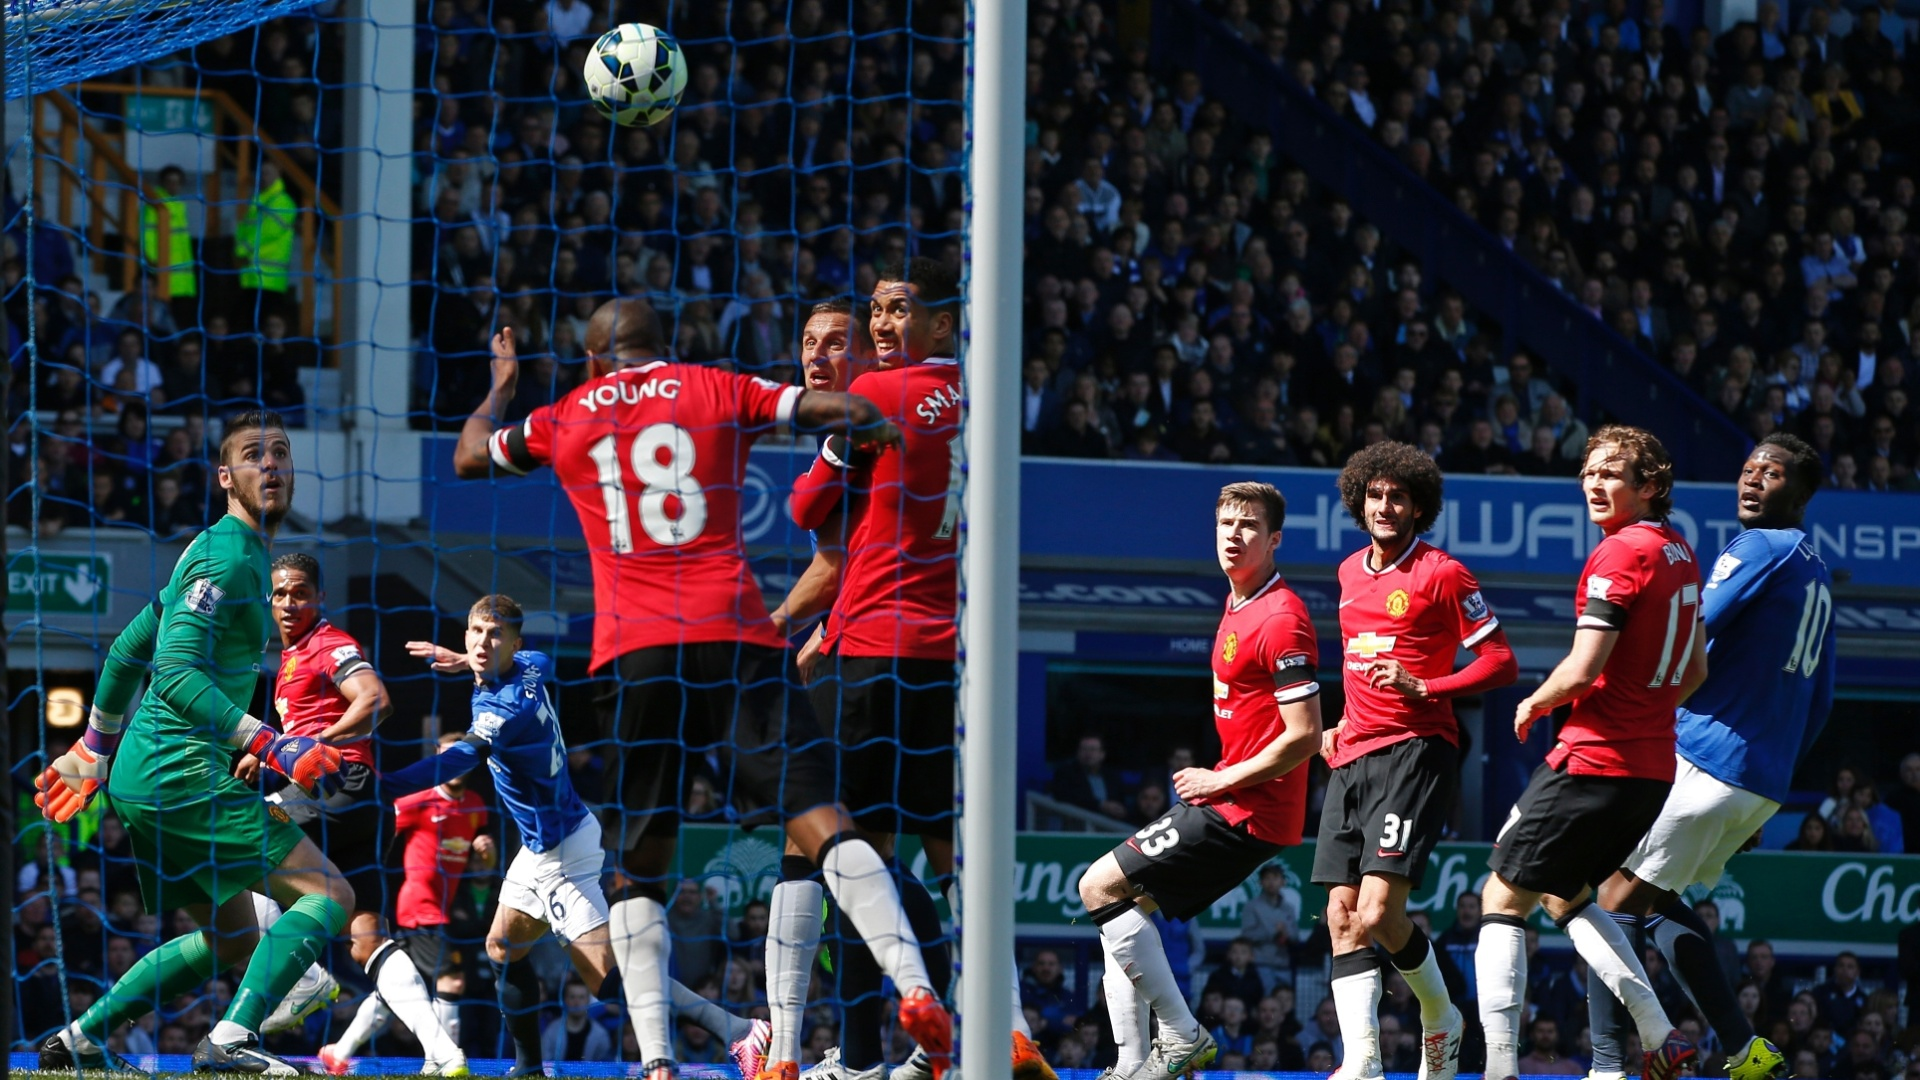 Ashley Young tenta, sem sucesso, evitar o segundo gol do Everton em cima do Manchester United